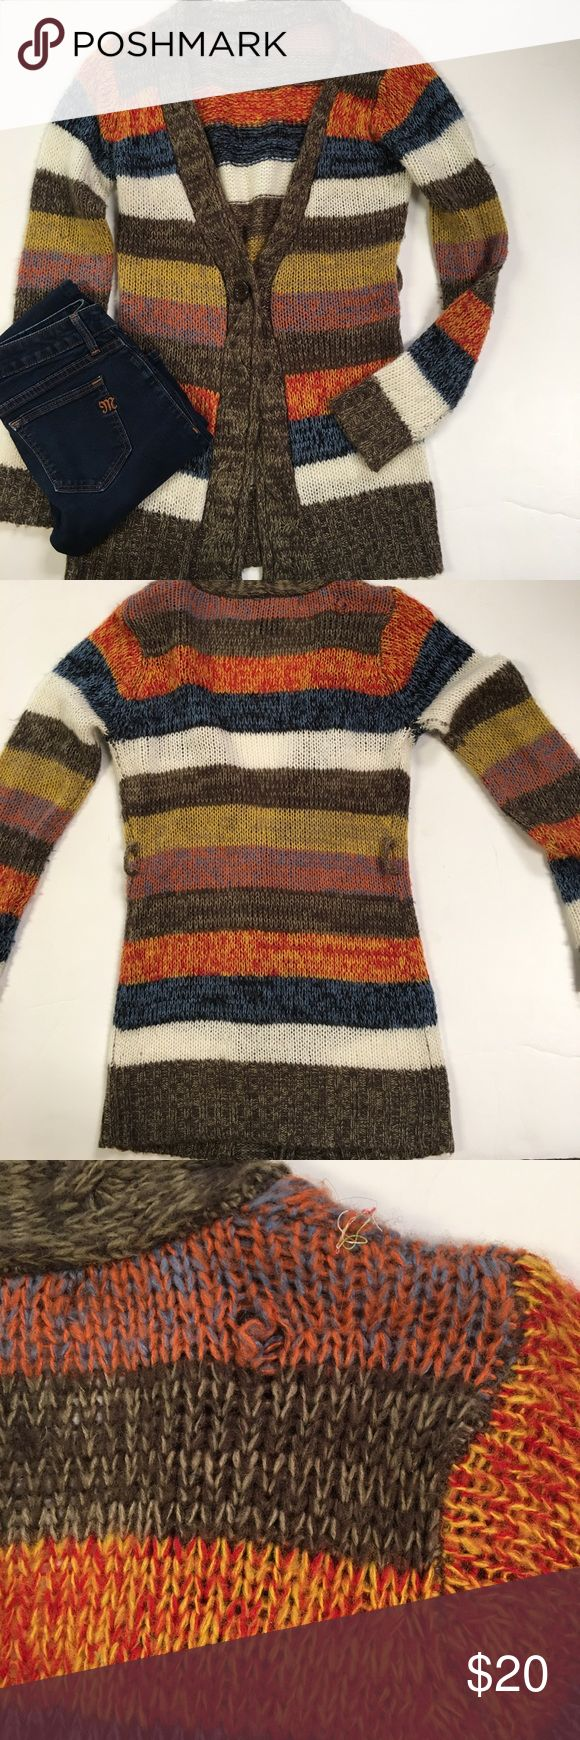 "Colorful Striped Long Cardigan Sweater This is a casual and mid-weight striped Cardigan sweater. Blue, orange, yellow, brown, Ivory, and a smidge of gray hue thrown in. There are two things wrong with it. There used to be a tie, which has gone missing, and there is a small snag in the upper right shoulder, as shown in the photos. Price is reflective of that. Single button mid way down. 100% acrylic. Very soft. Machine washable. 34"" from shoulder to bottom hem. Ashley Sweaters Cardigans"